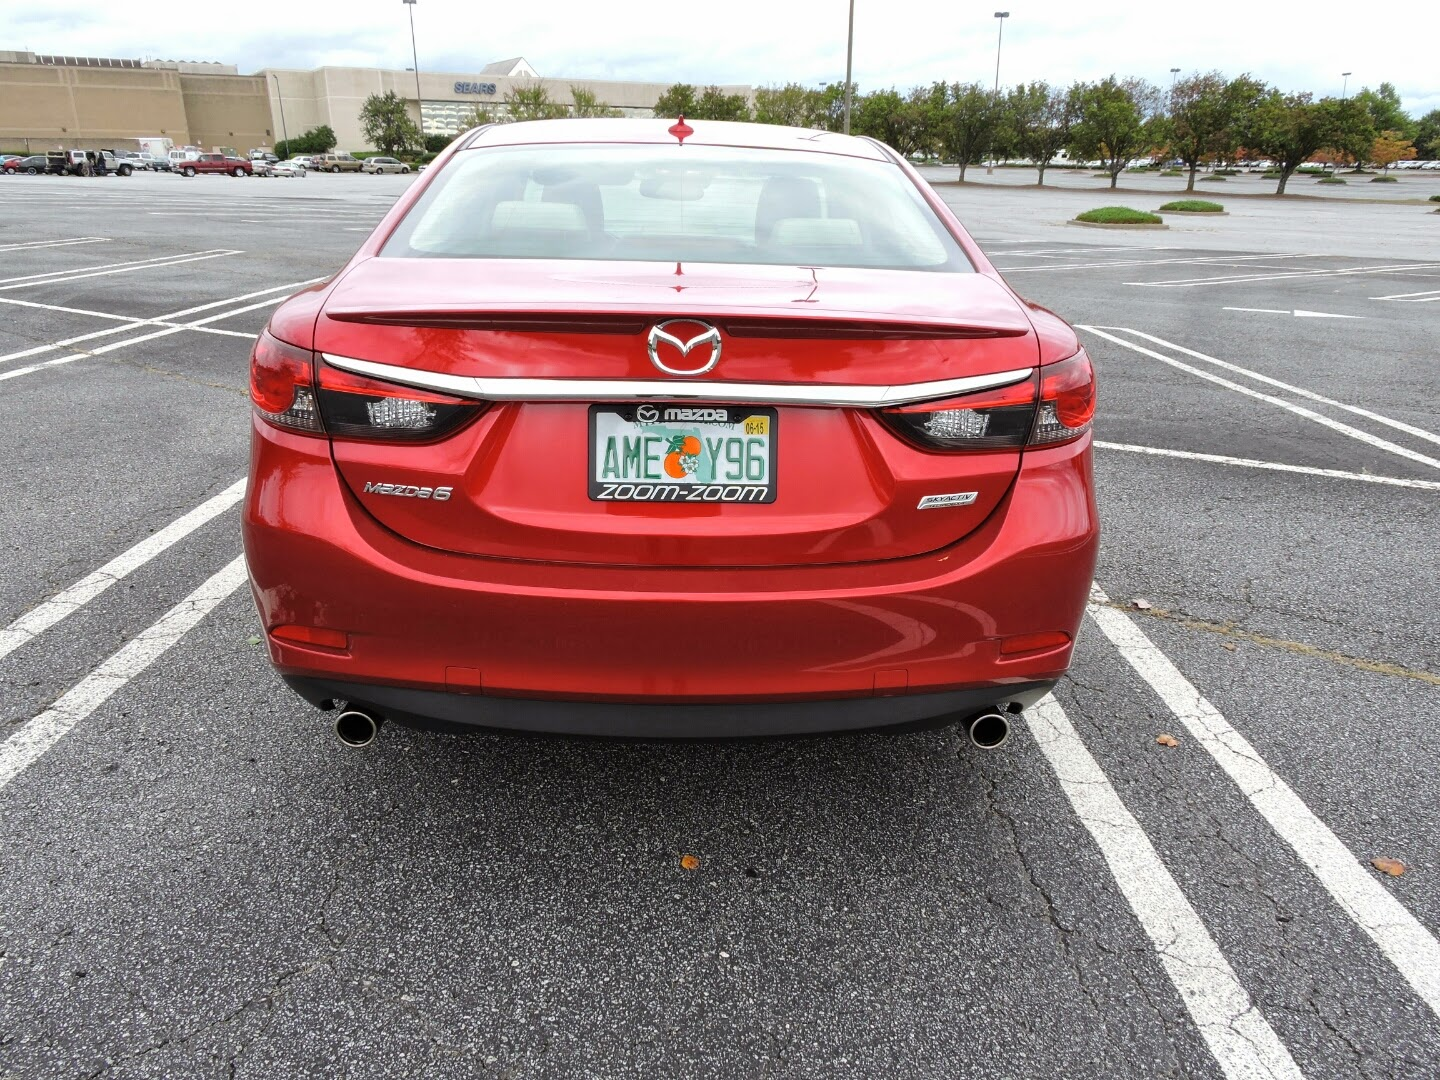 Adventures in 2015 Mazda 6 and Review #Mazda6 via www.productreviewmom.com